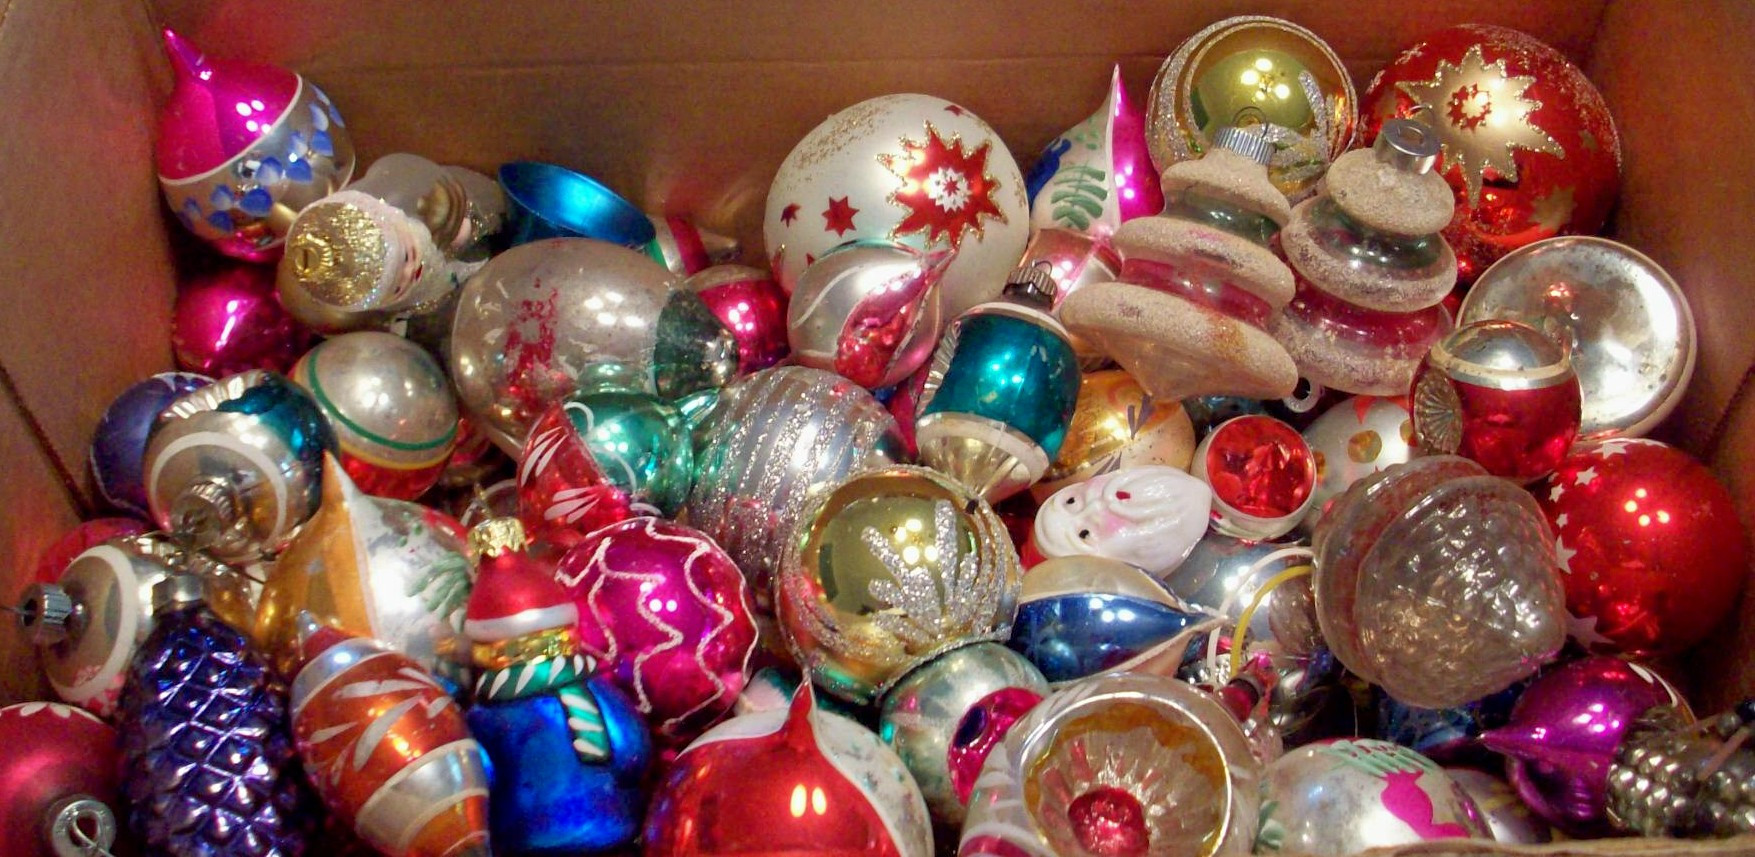 Best Of Old Fashioned Christmas ornaments Old Fashioned ornaments Of Attractive 42 Ideas Old Fashioned ornaments